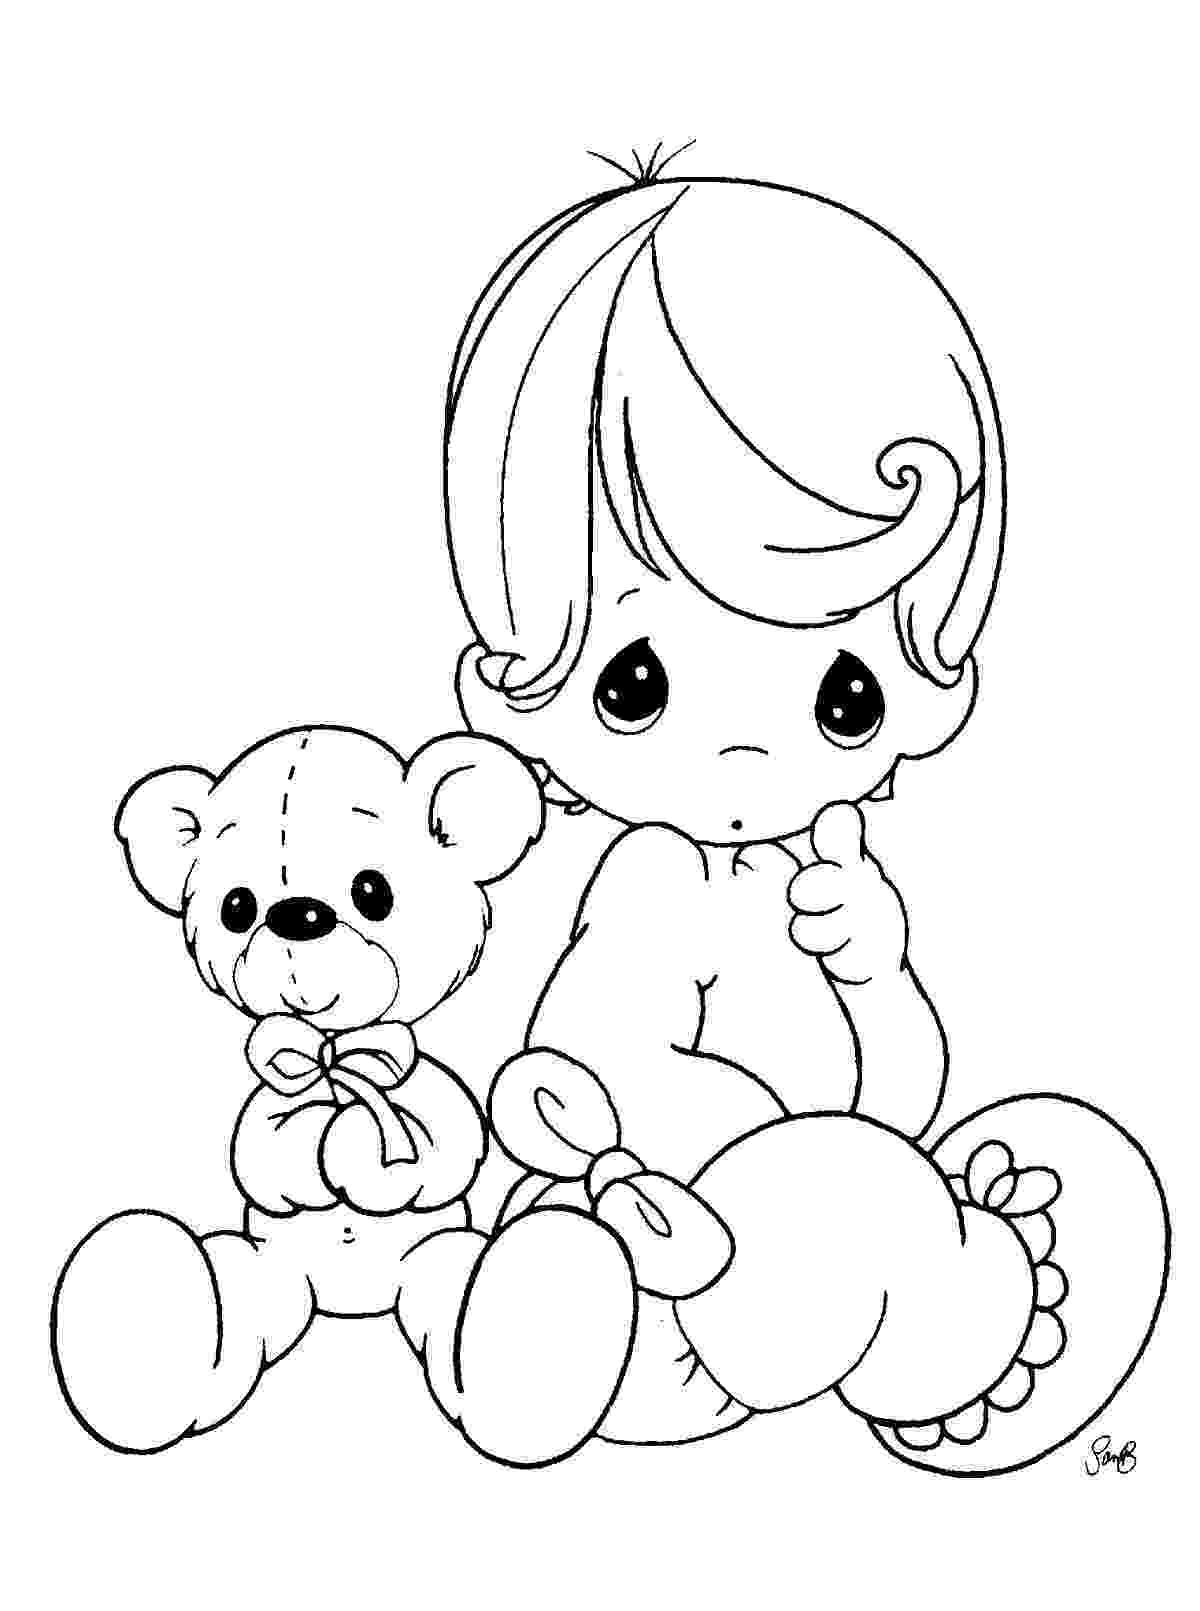 coloring pages baby free printable baby coloring pages for kids baby coloring pages